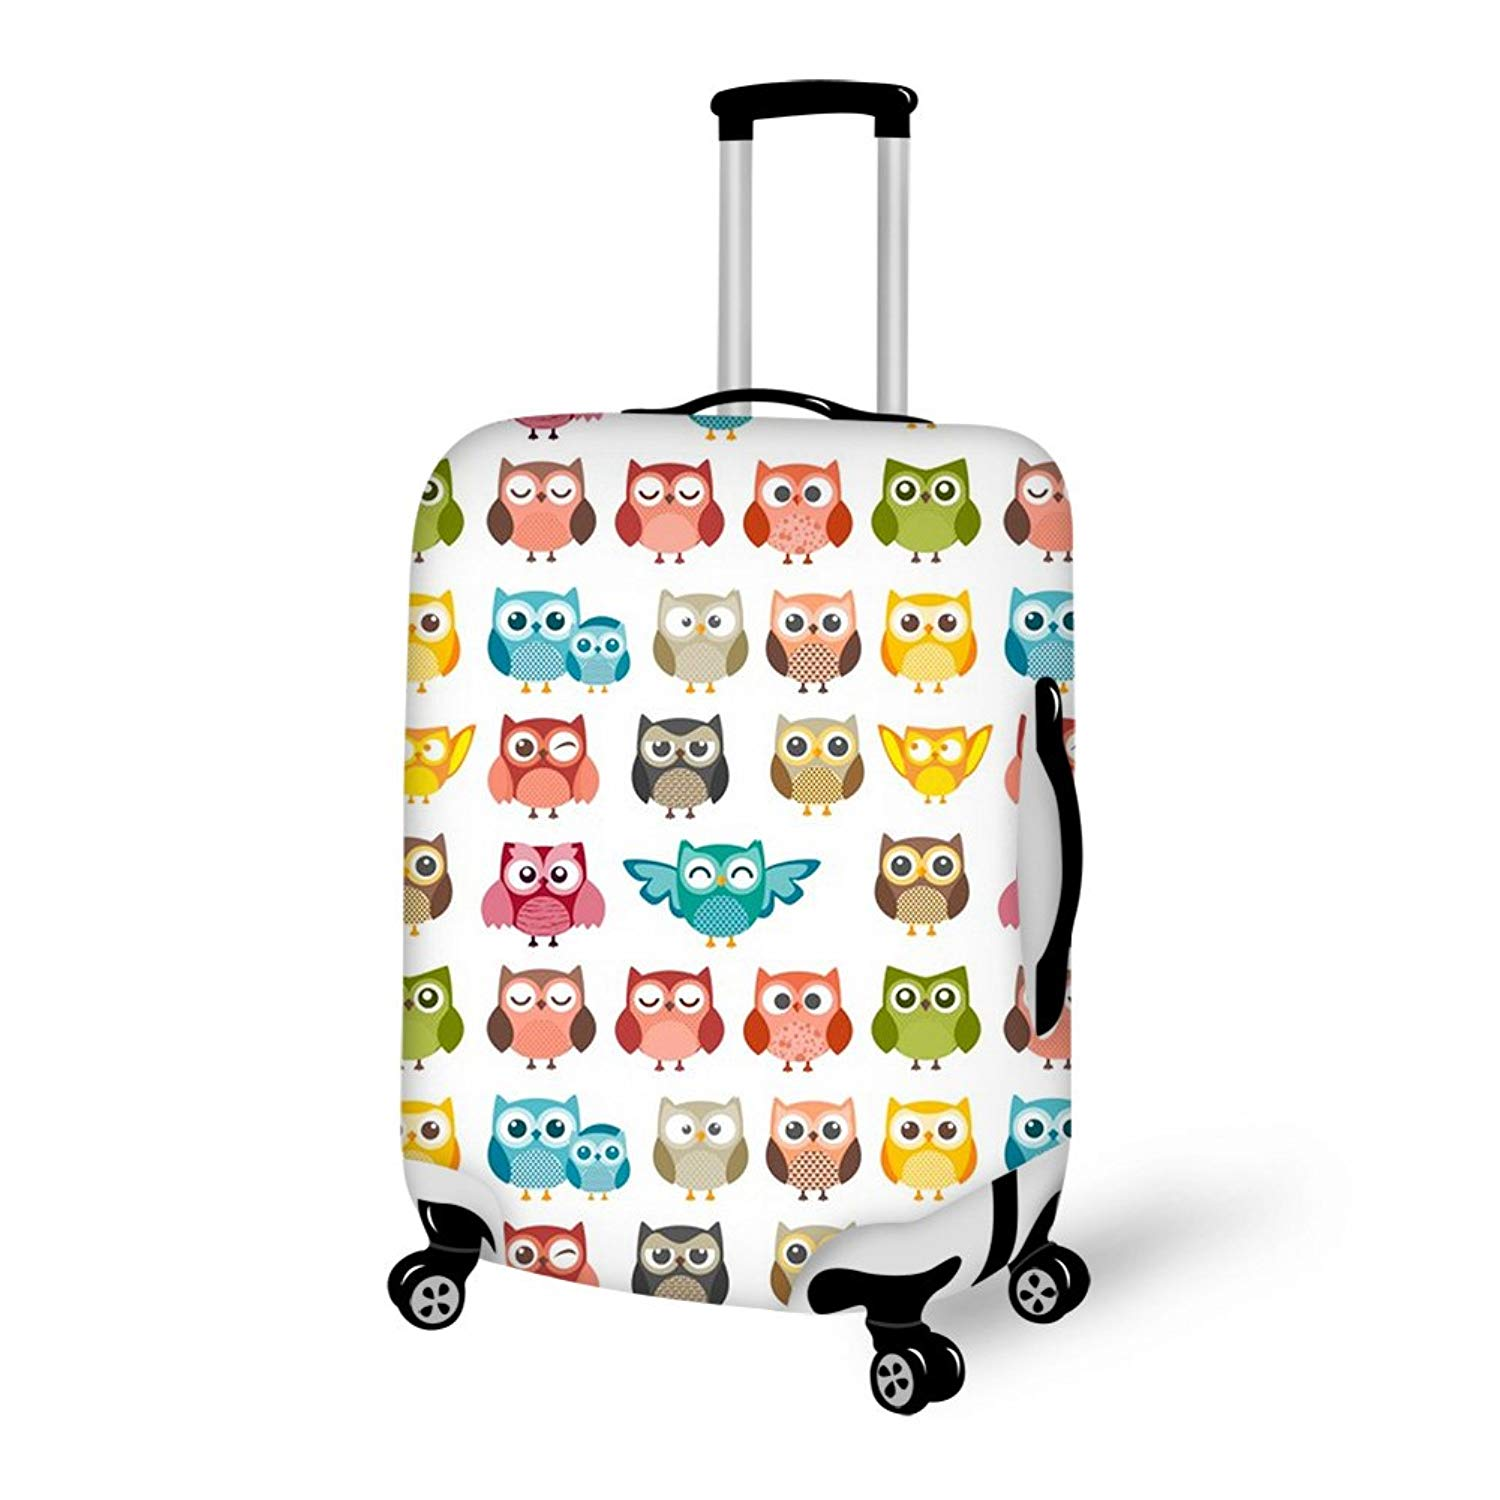 Green Marble Traveler Lightweight Rotating Luggage Cover Can Carry With You Can Expand Travel Bag Trolley Rolling Luggage Cover